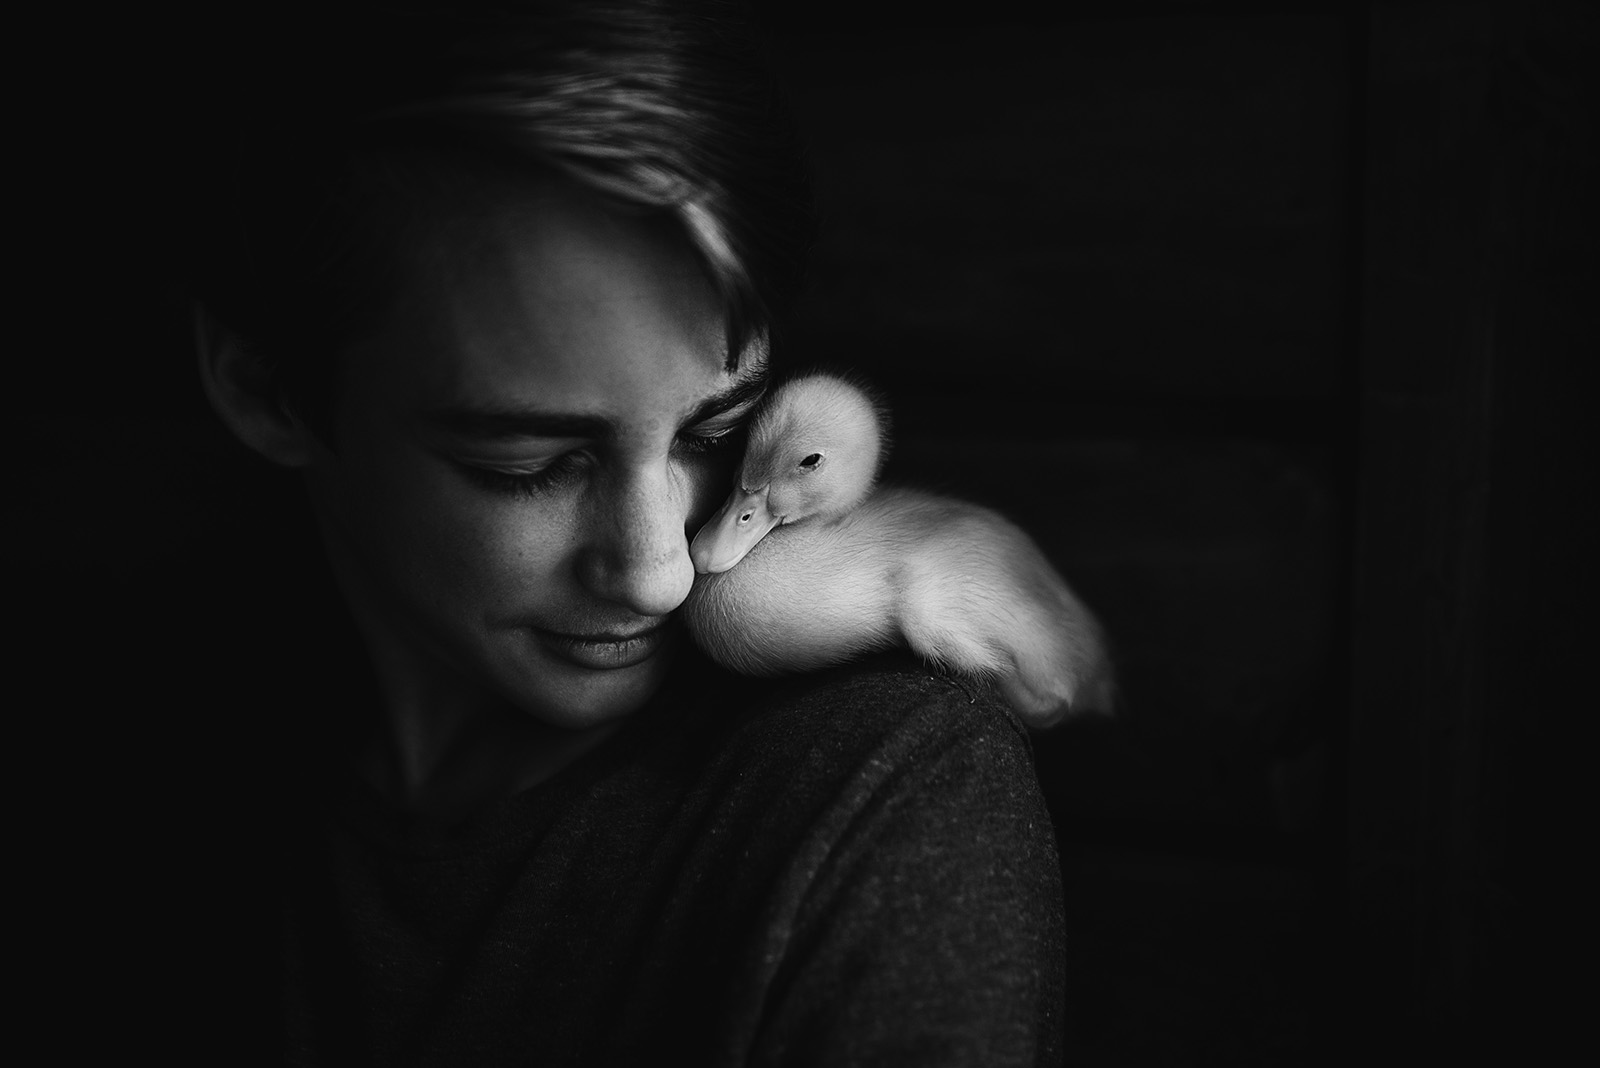 Photo contest winner, duck on shoulder